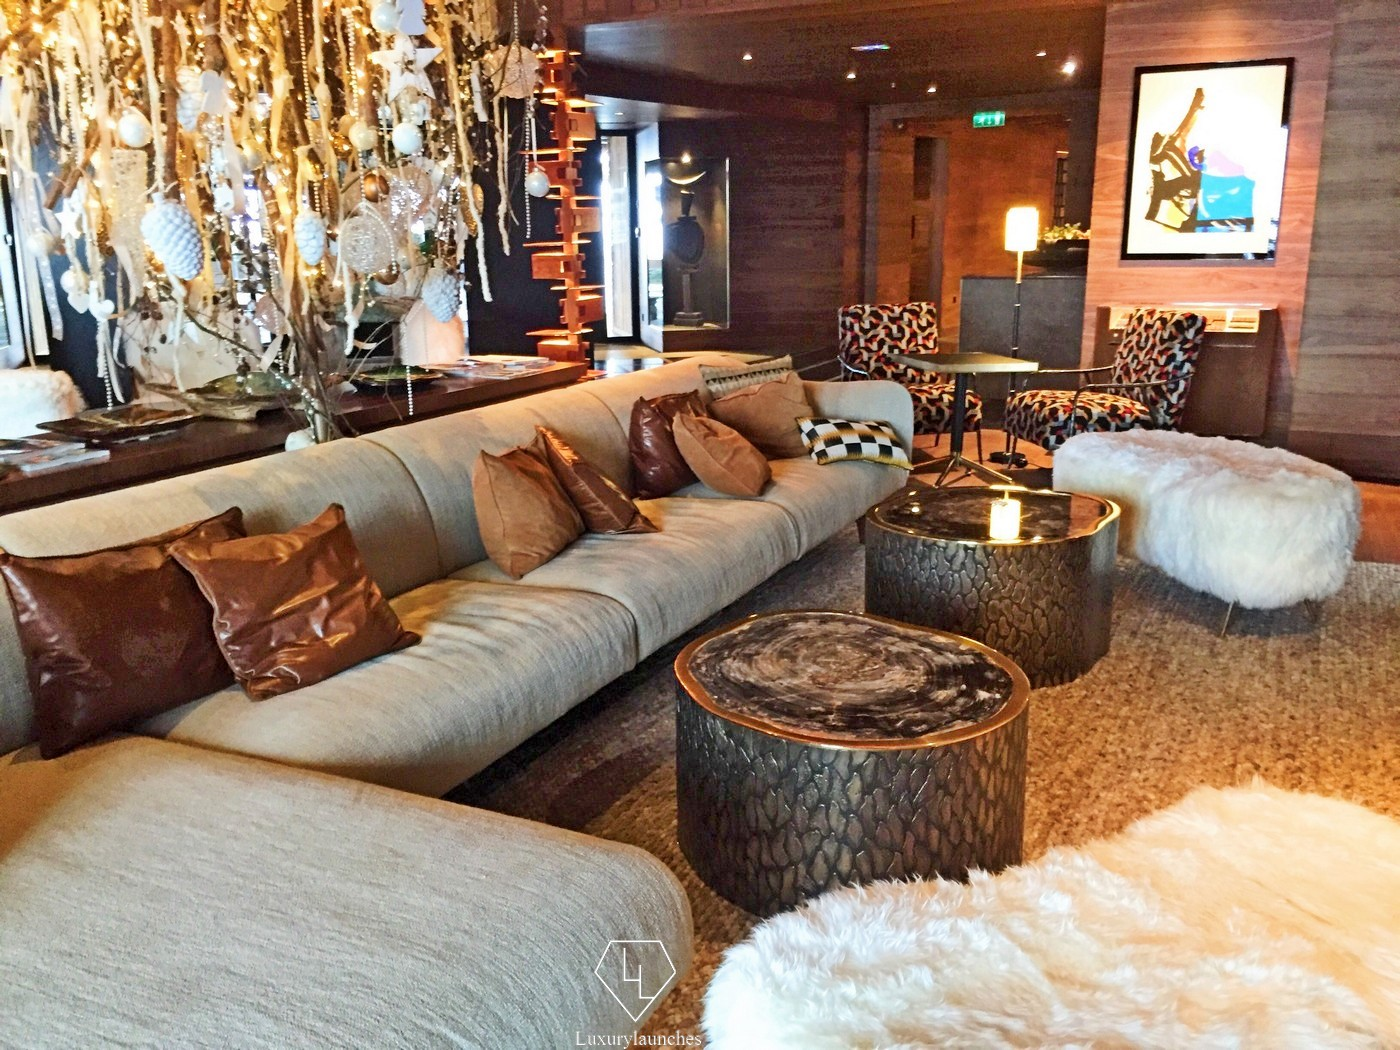 Four seasons hotel meg ve an authentic introduction to for Hotels 3 etoiles megeve